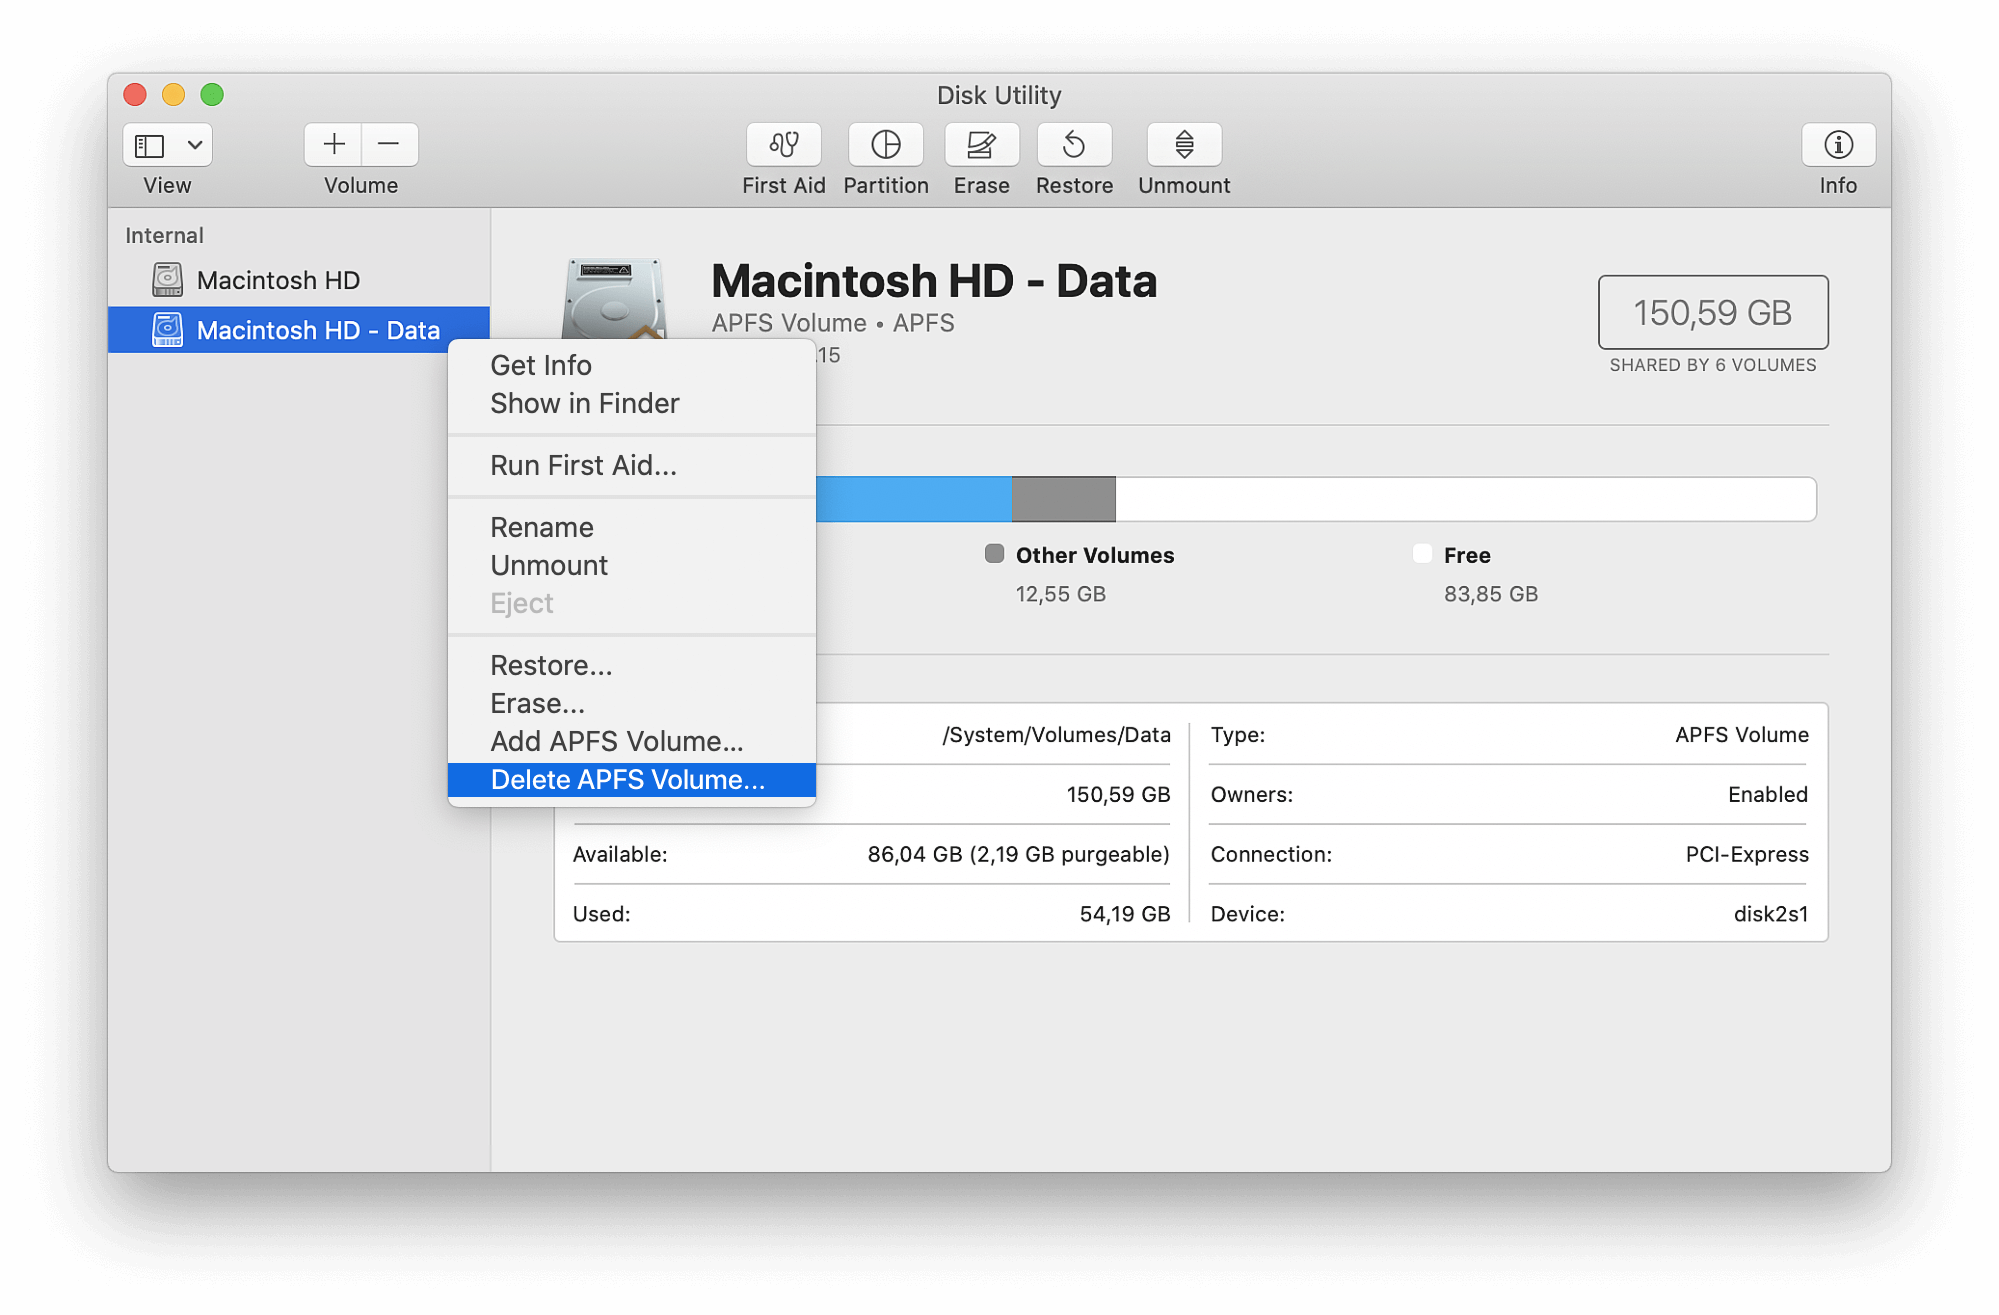 Delete APFS Volume command selected in Disk Utility